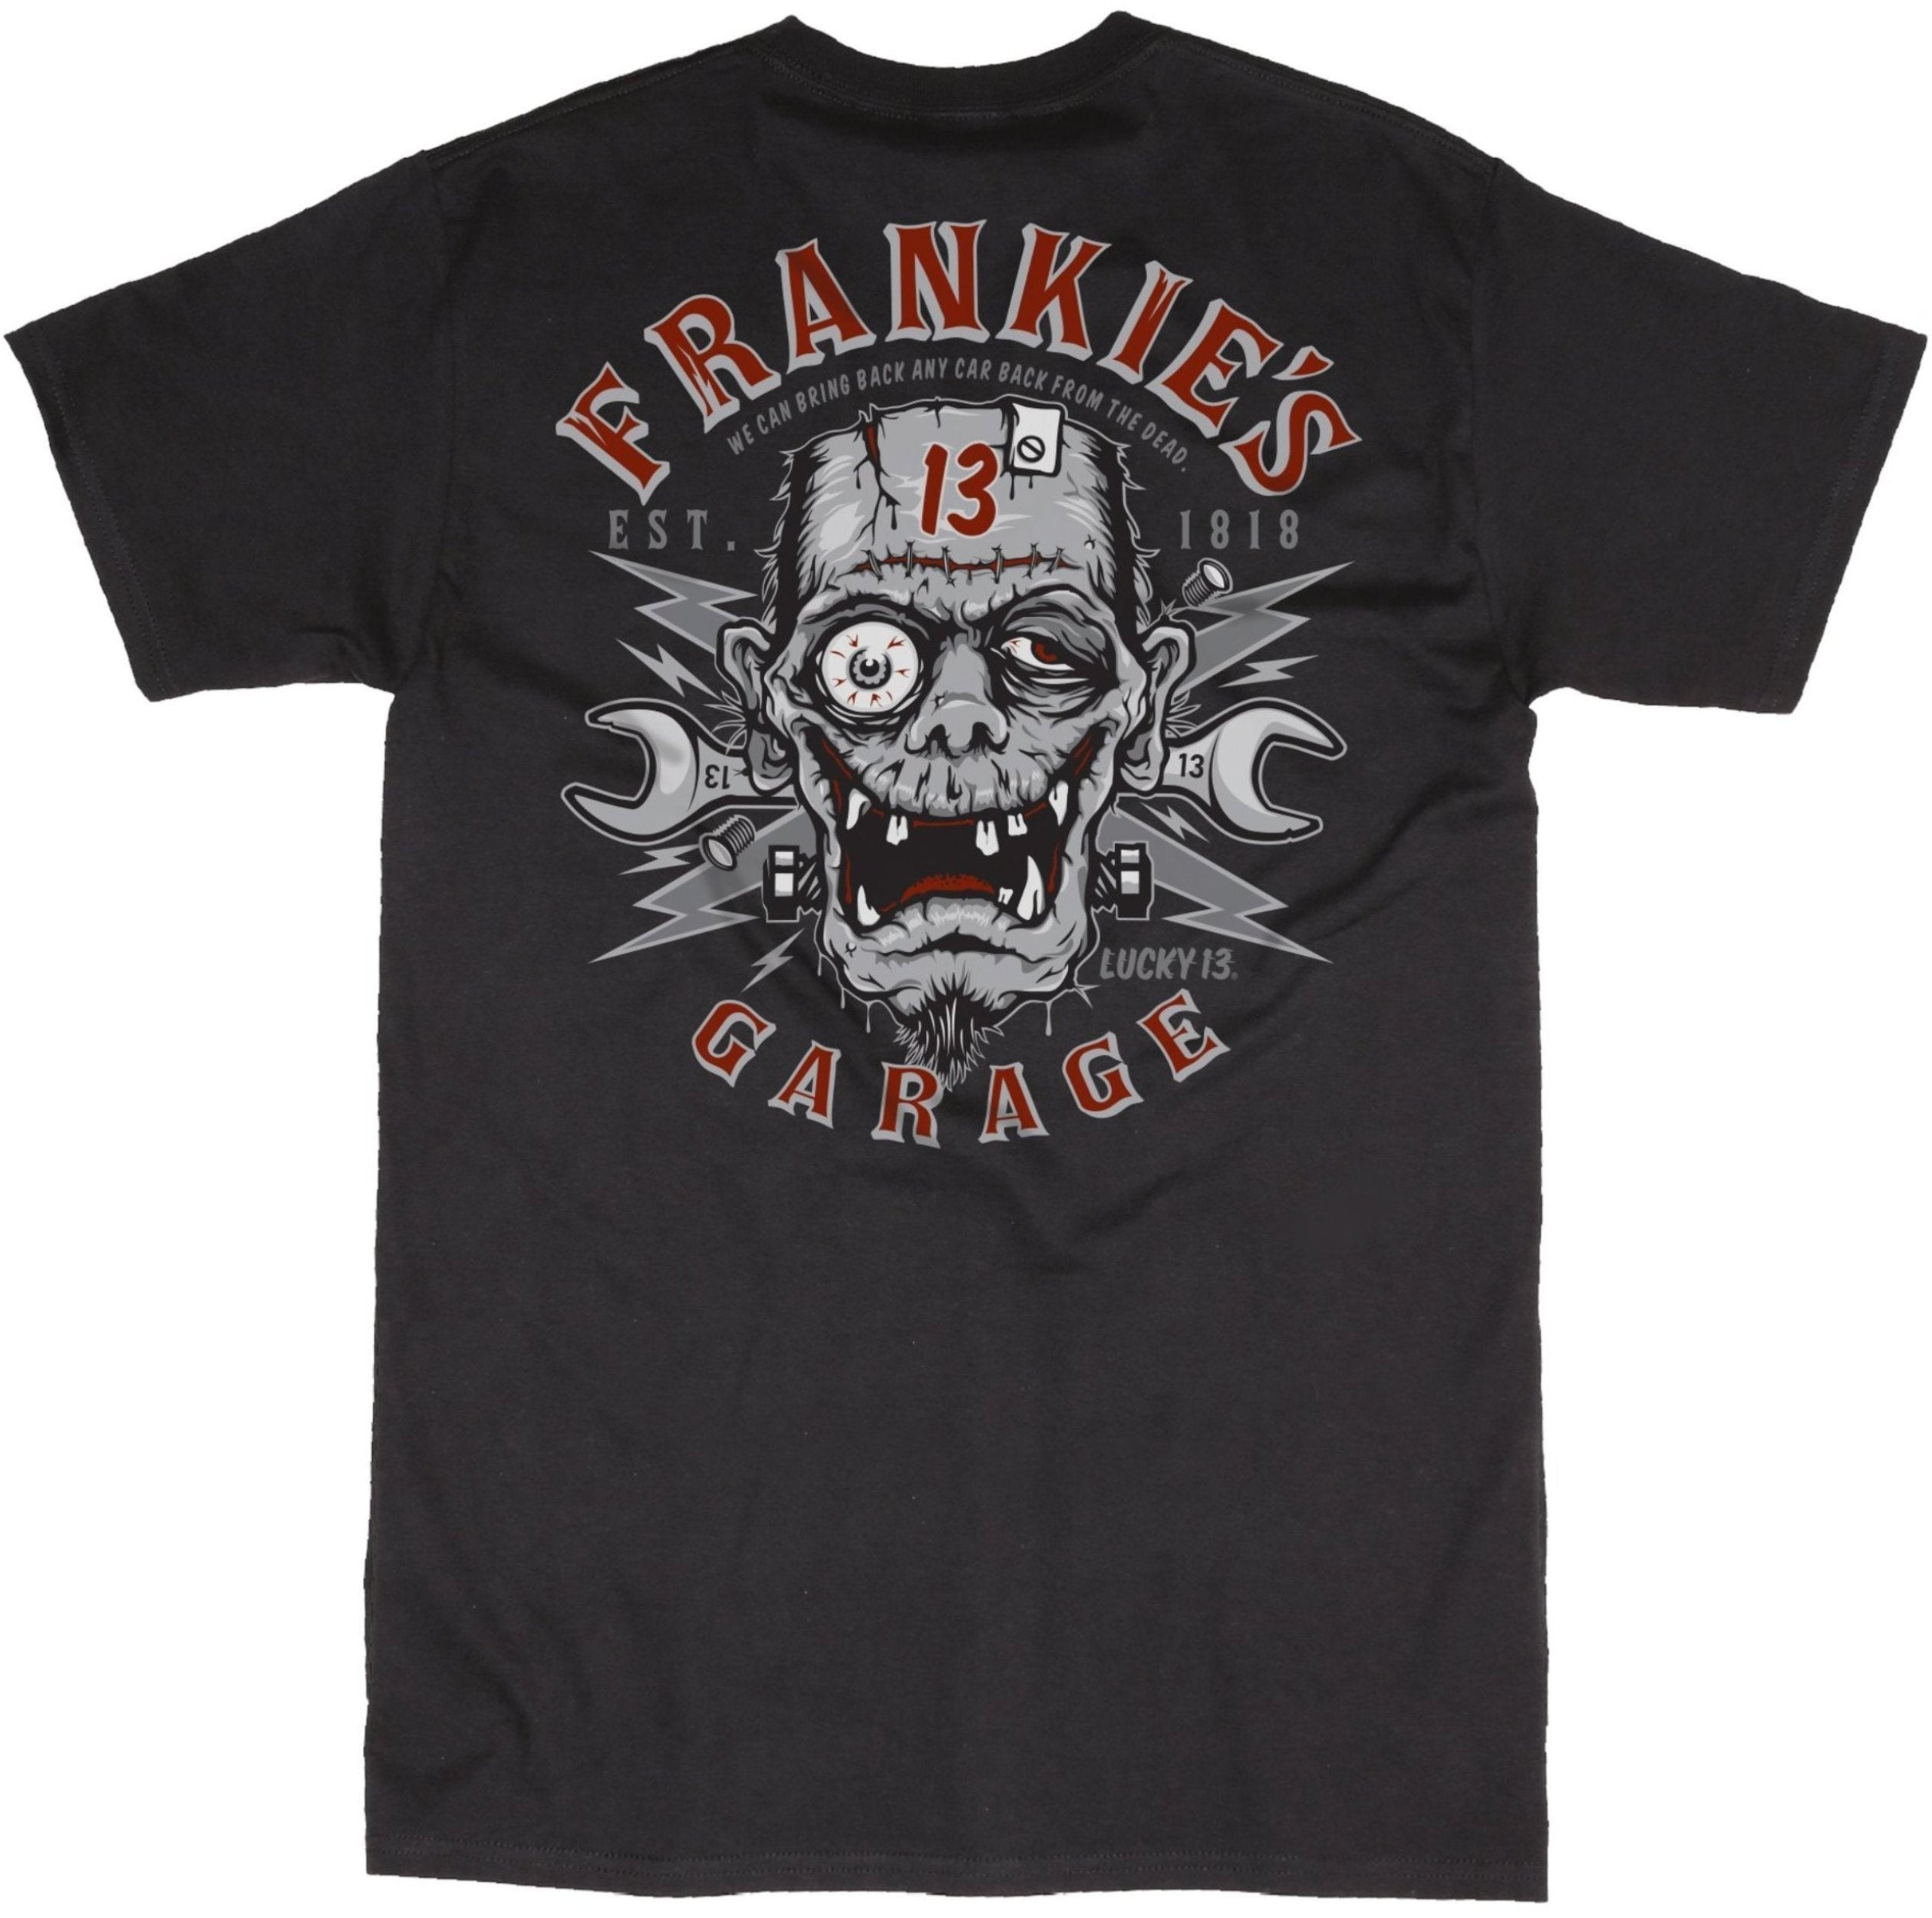 The FRANKIE'S GARAGE Tee